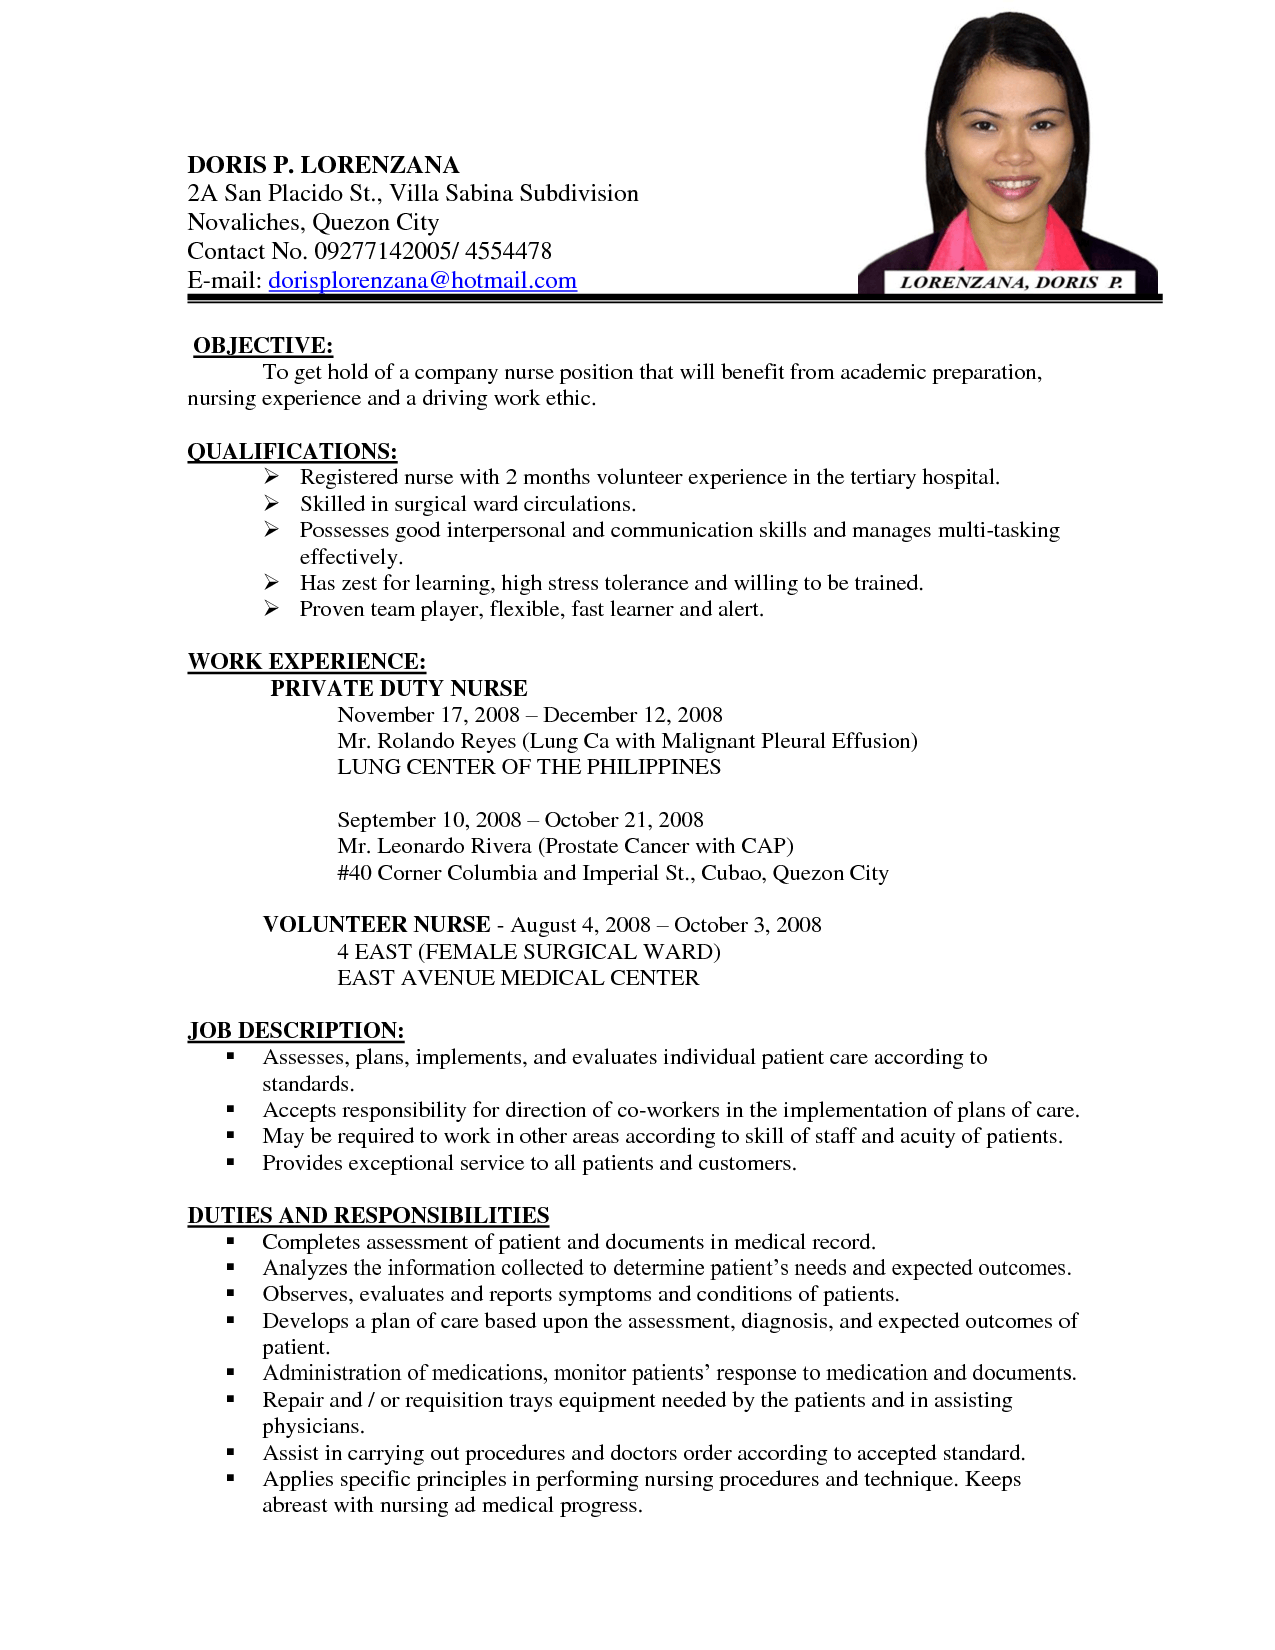 Nursing Resume Template Captivating Image Result For Curriculum Vitae Format For A Nurse  Card